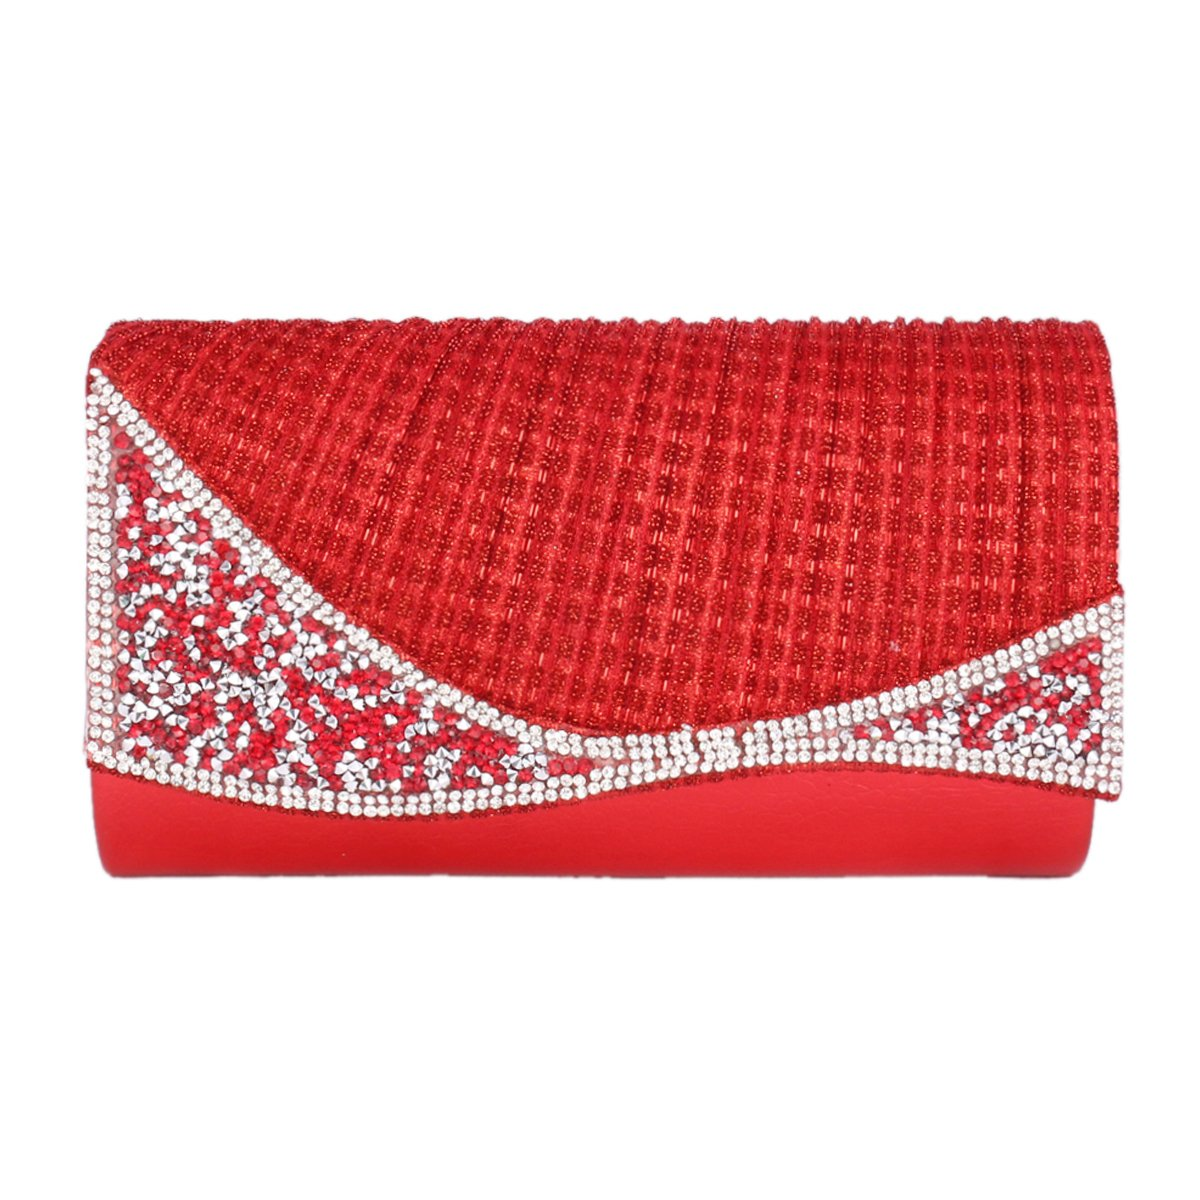 Day of Saturn Women's Irregular Rhinestones Adorn Bling Evening Bag,Red